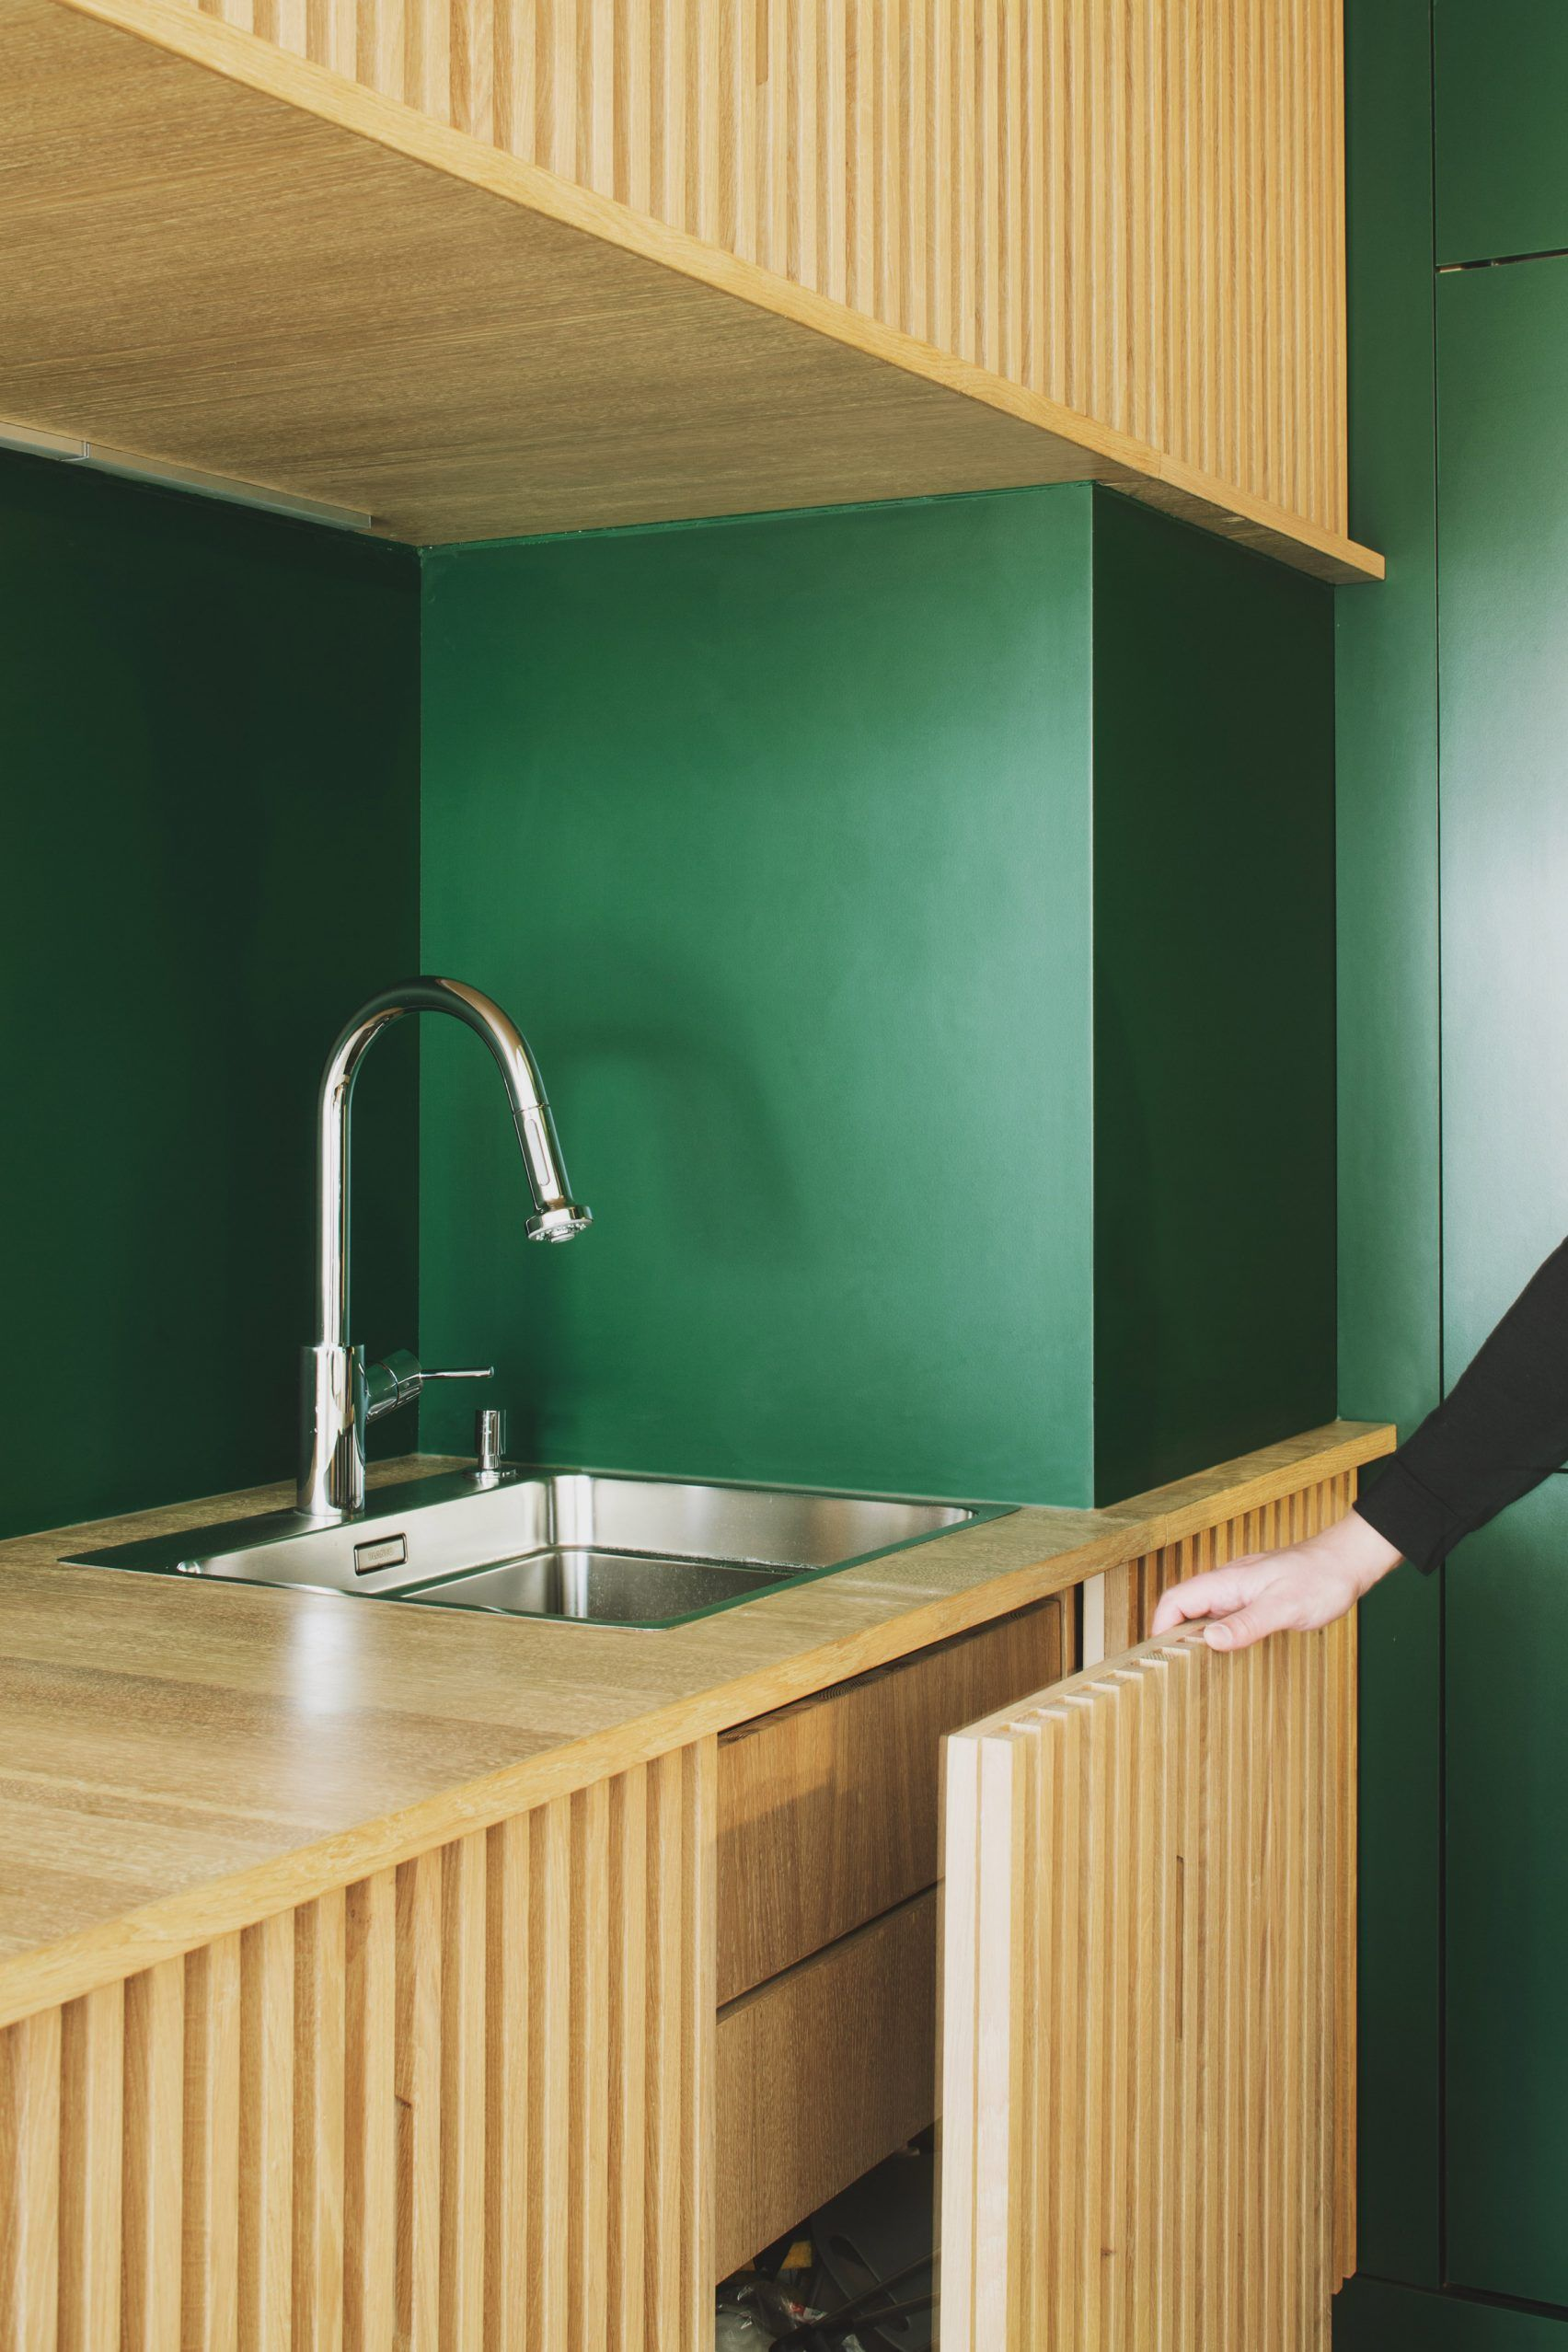 The green kitchen by atelier sagitta interior residency in